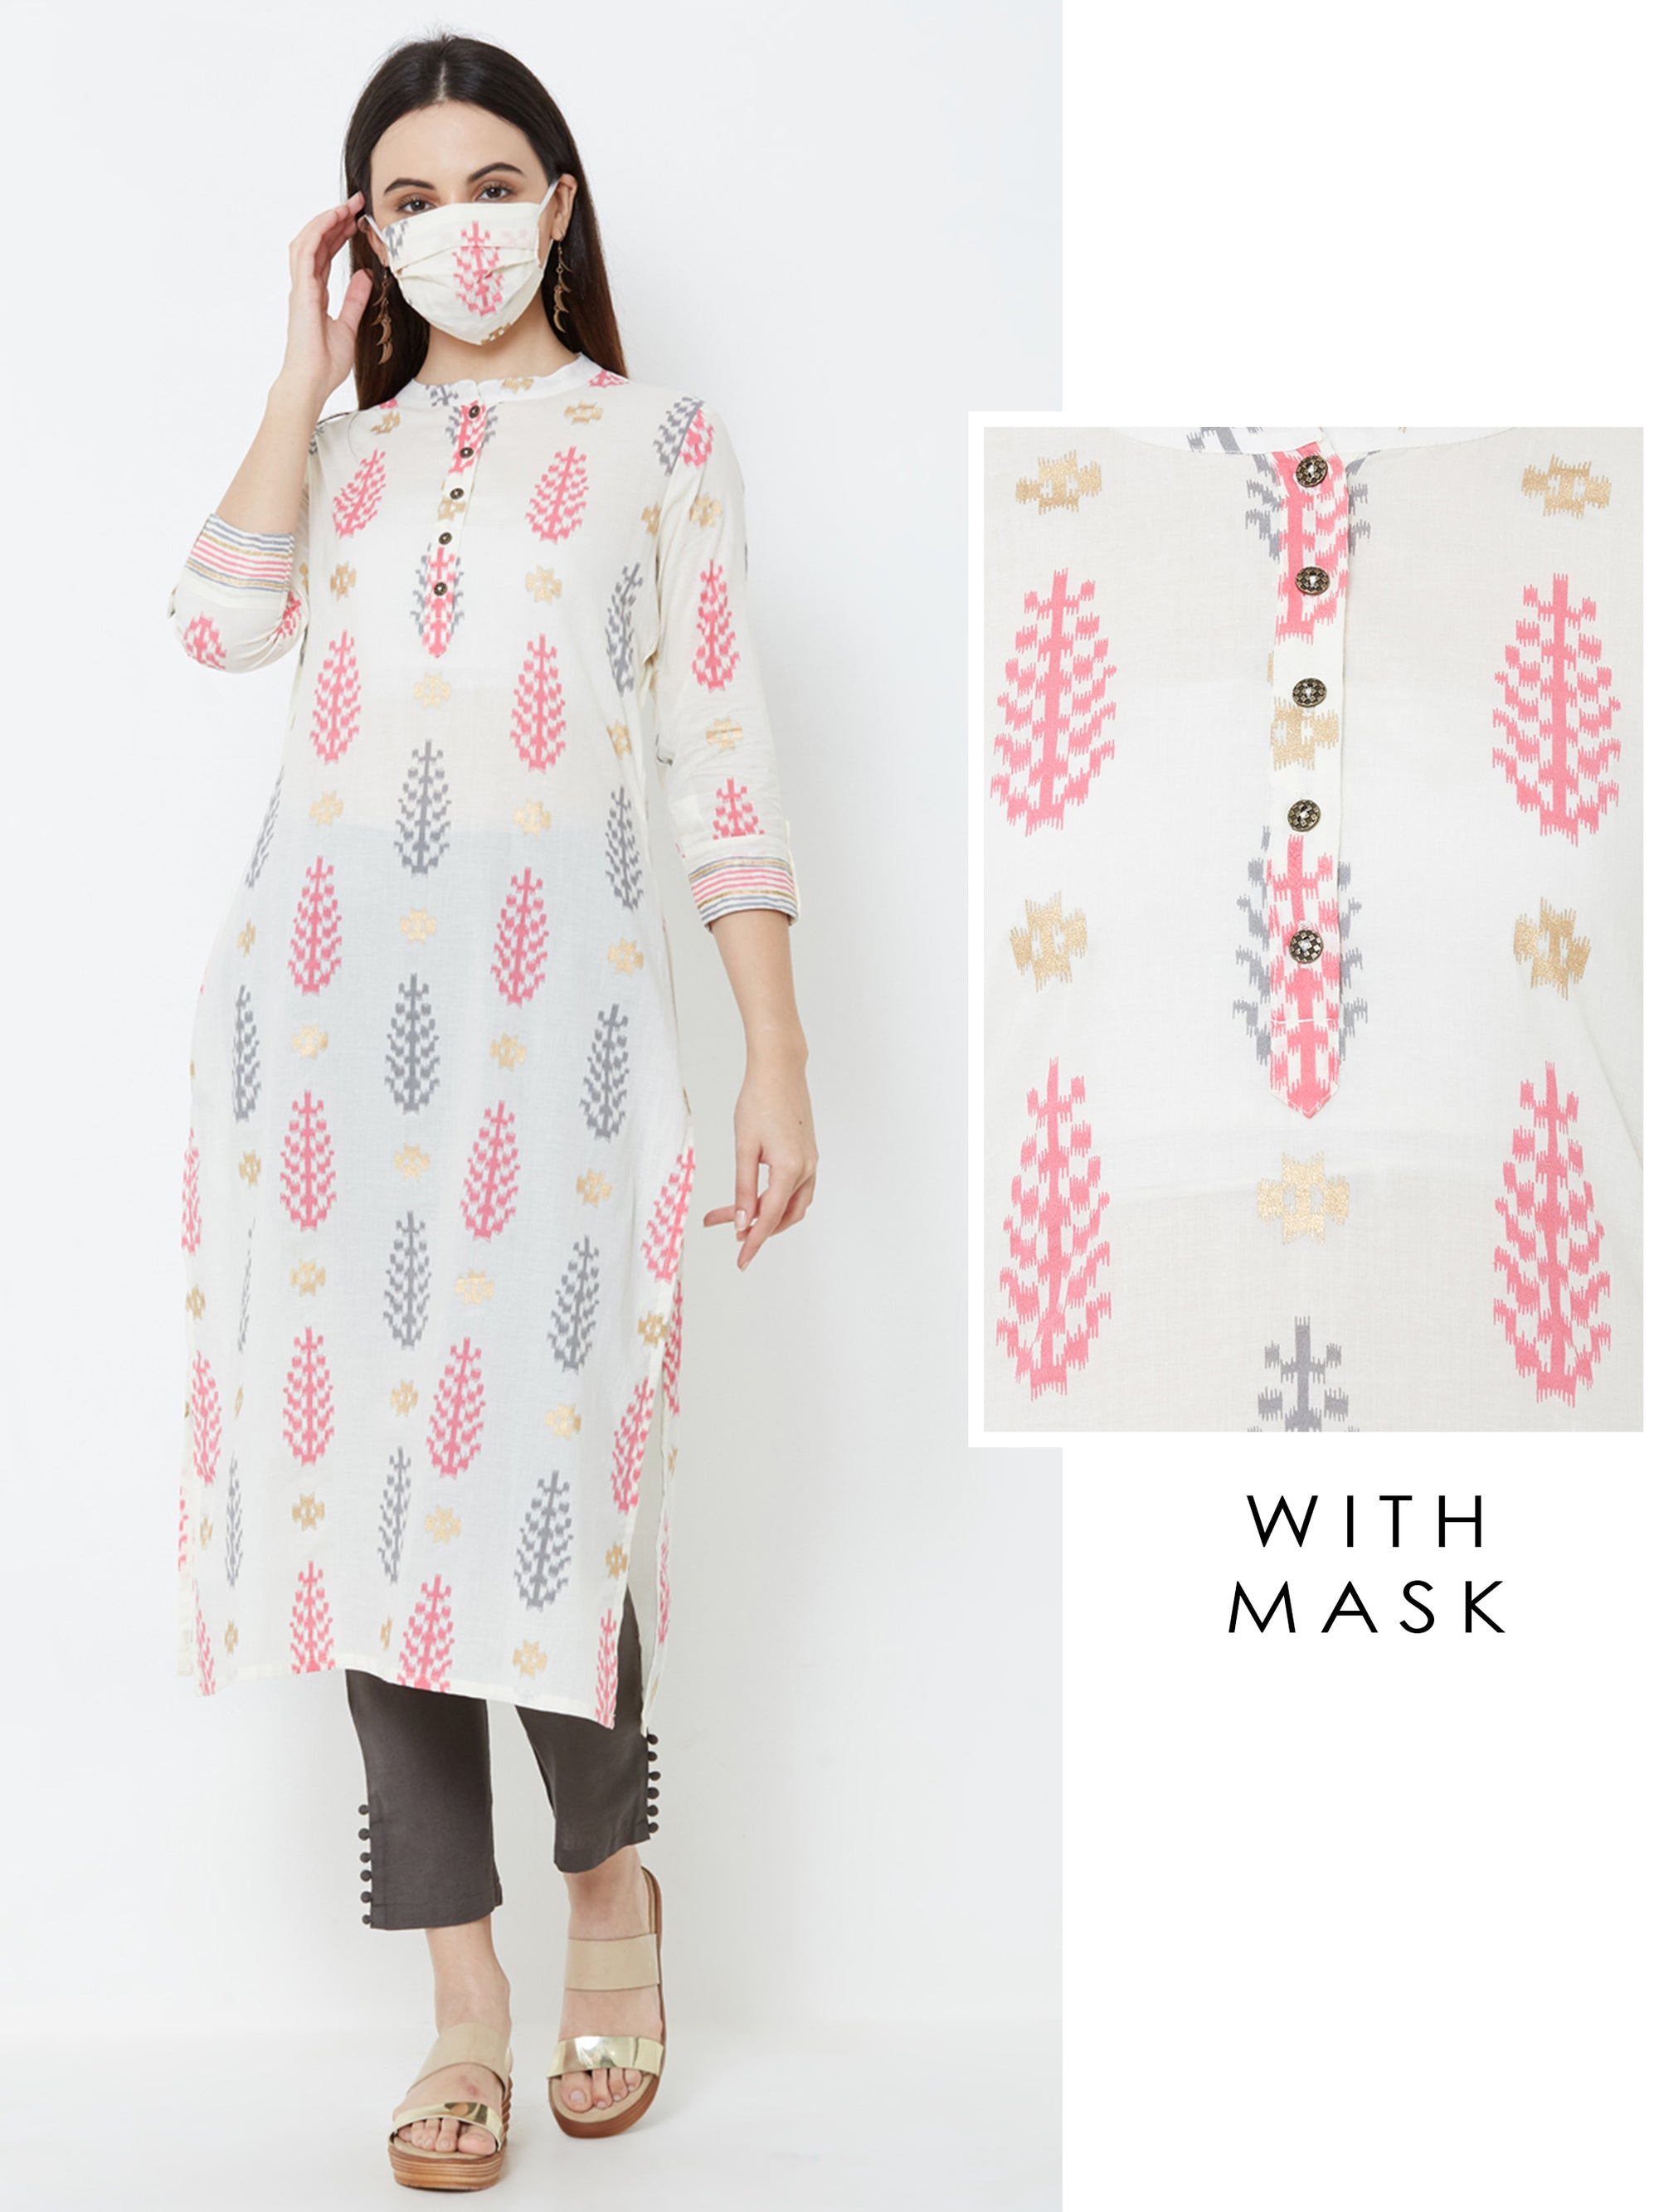 Abstract Leaf Printed Kurta with Matching Mask – Off-White